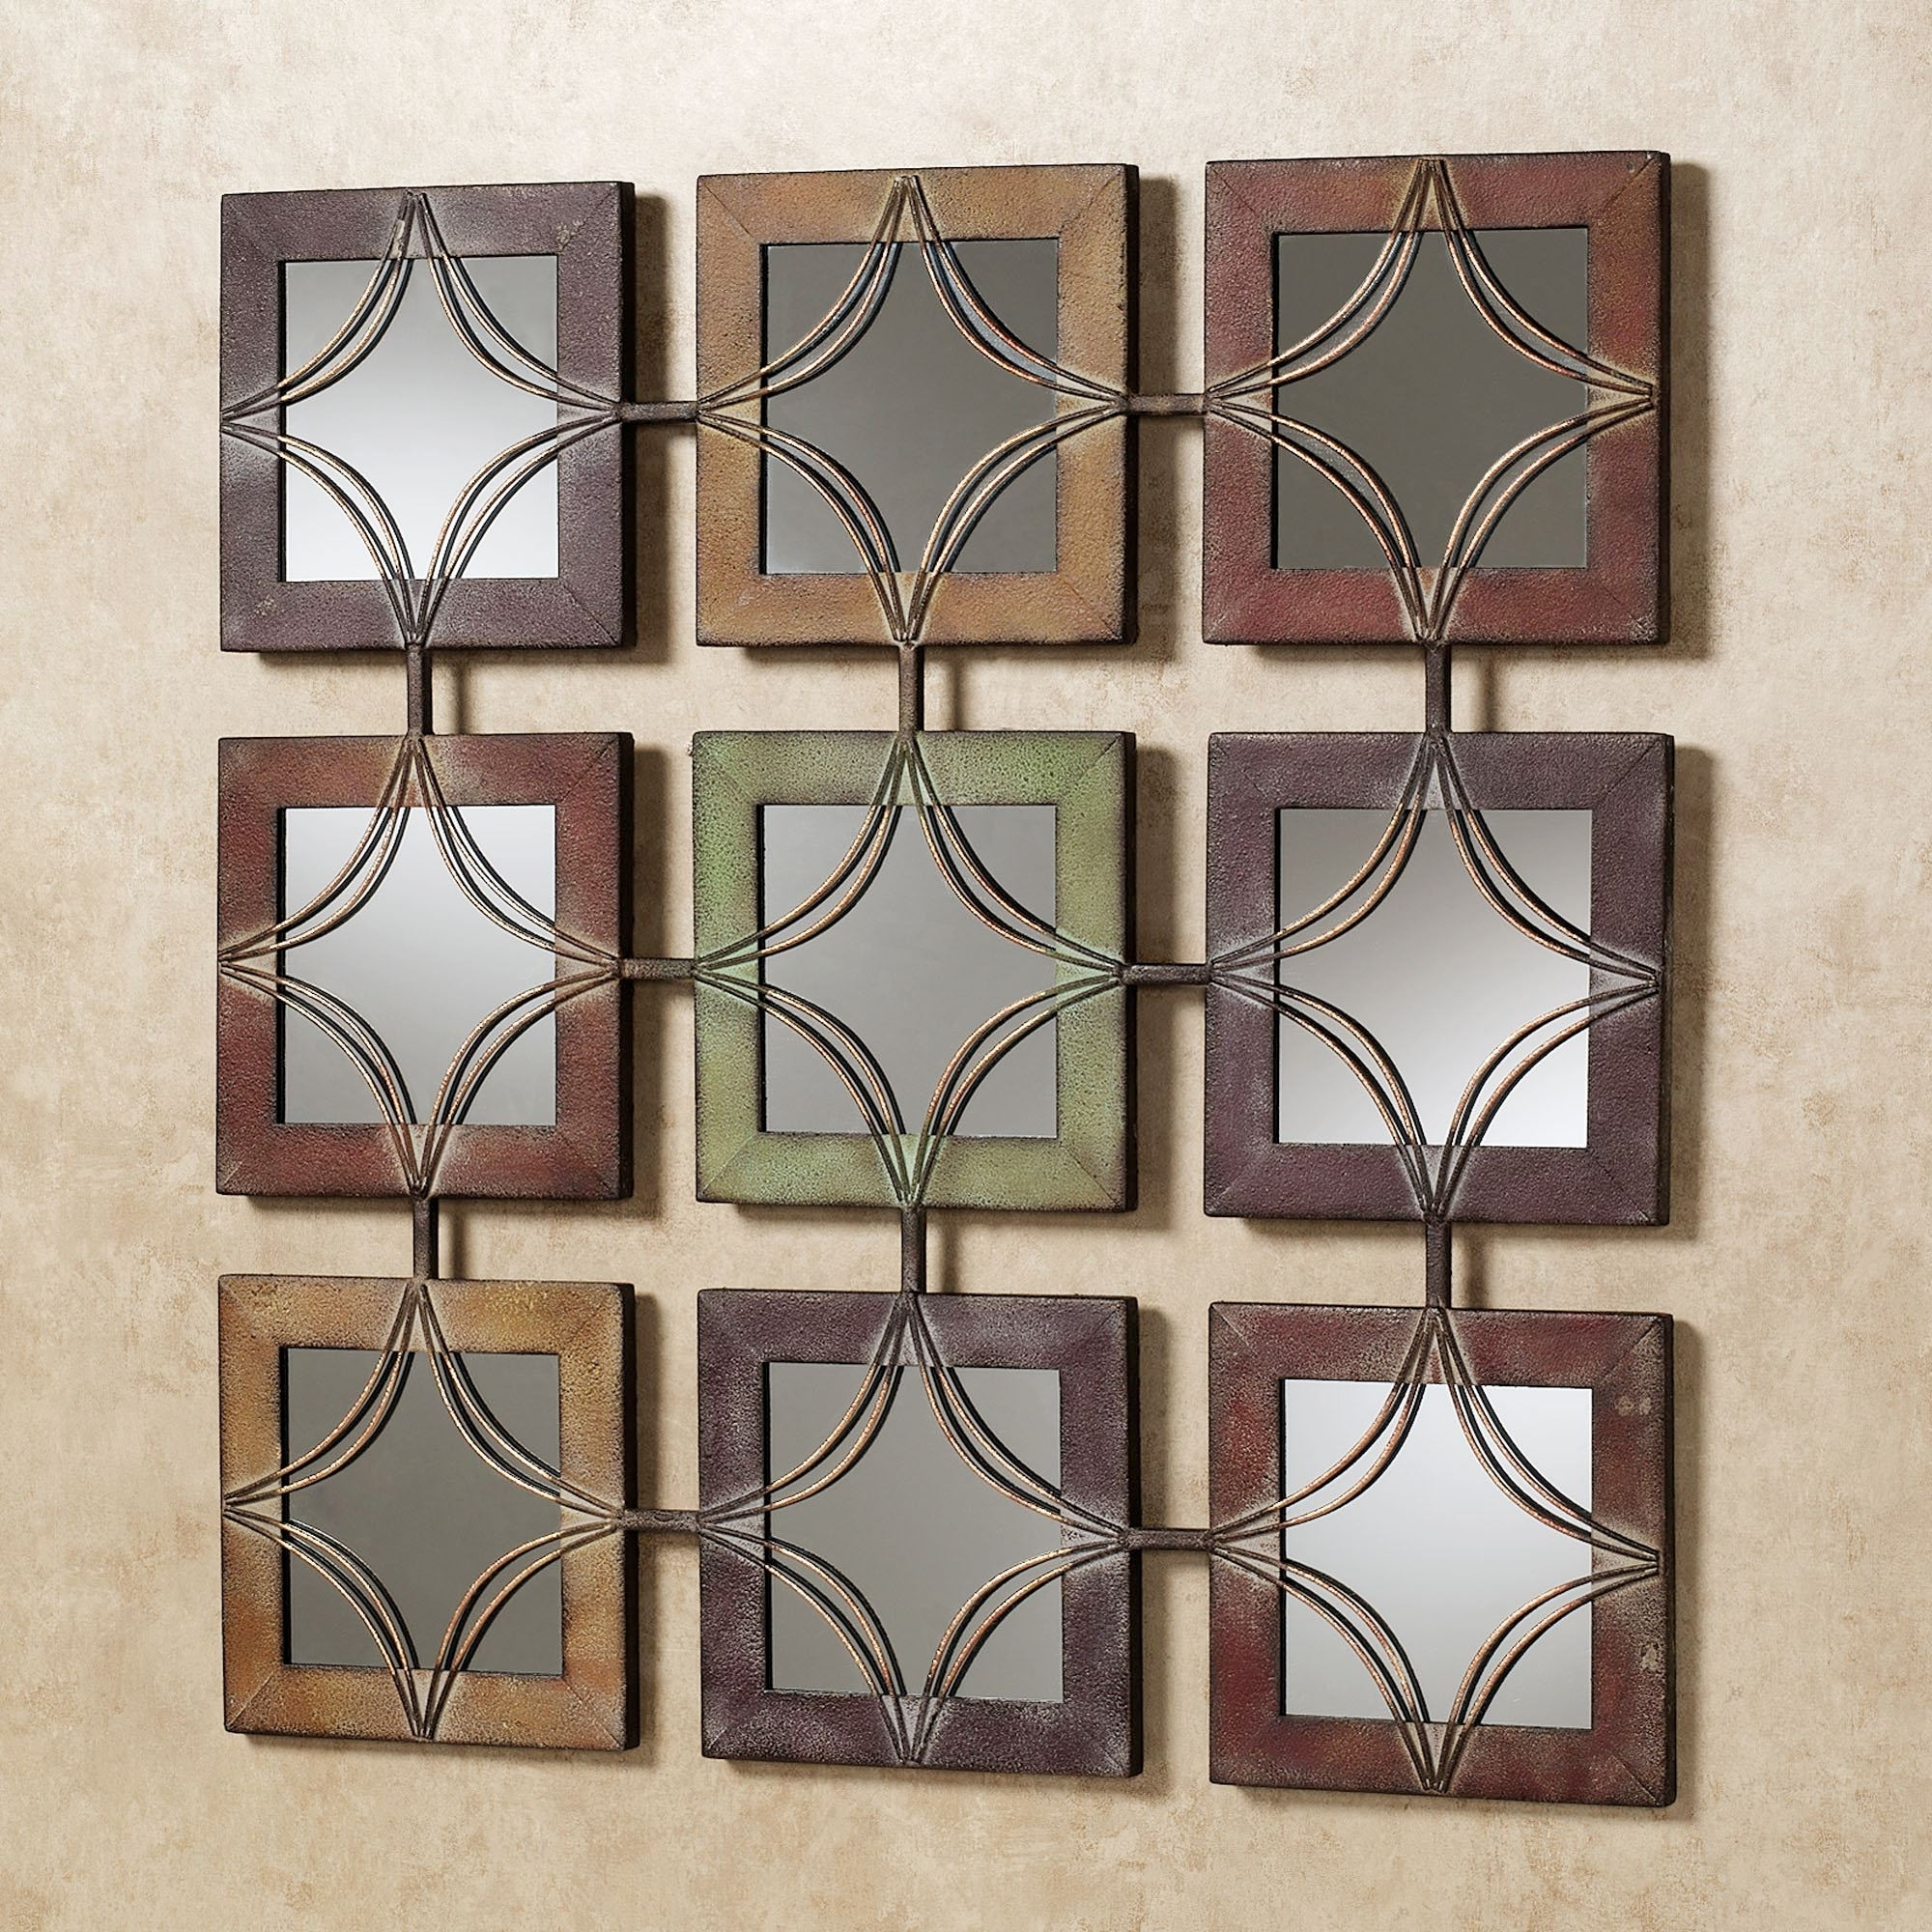 Domini Mirrored Metal Wall Art With Fashionable Mirrored Wall Art (Gallery 15 of 20)